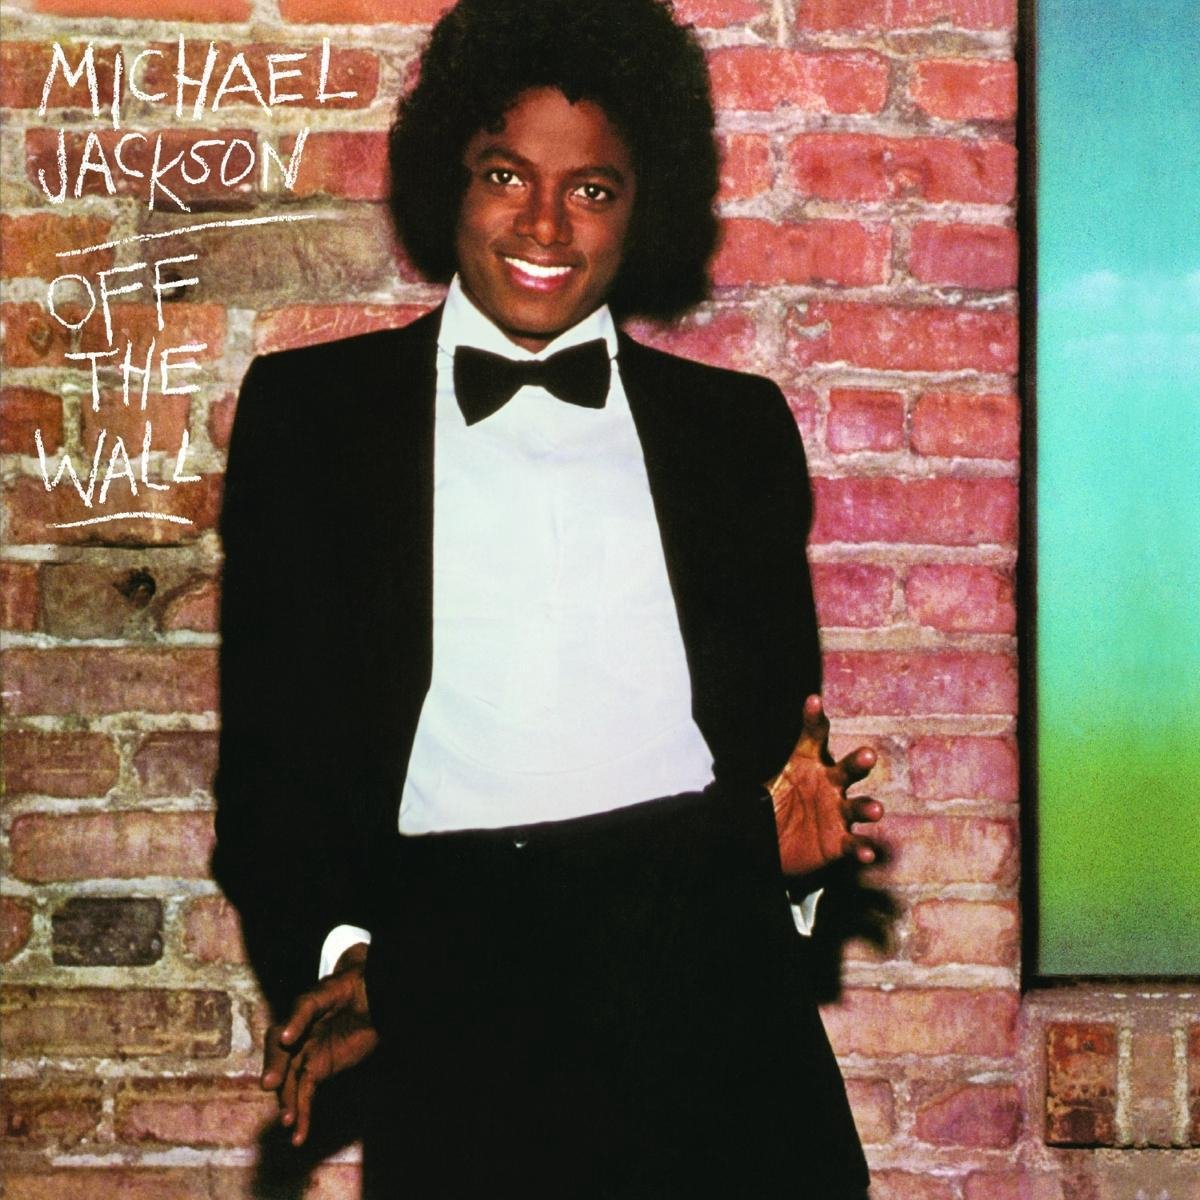 Off The Wall (LP) - Michael Jackson